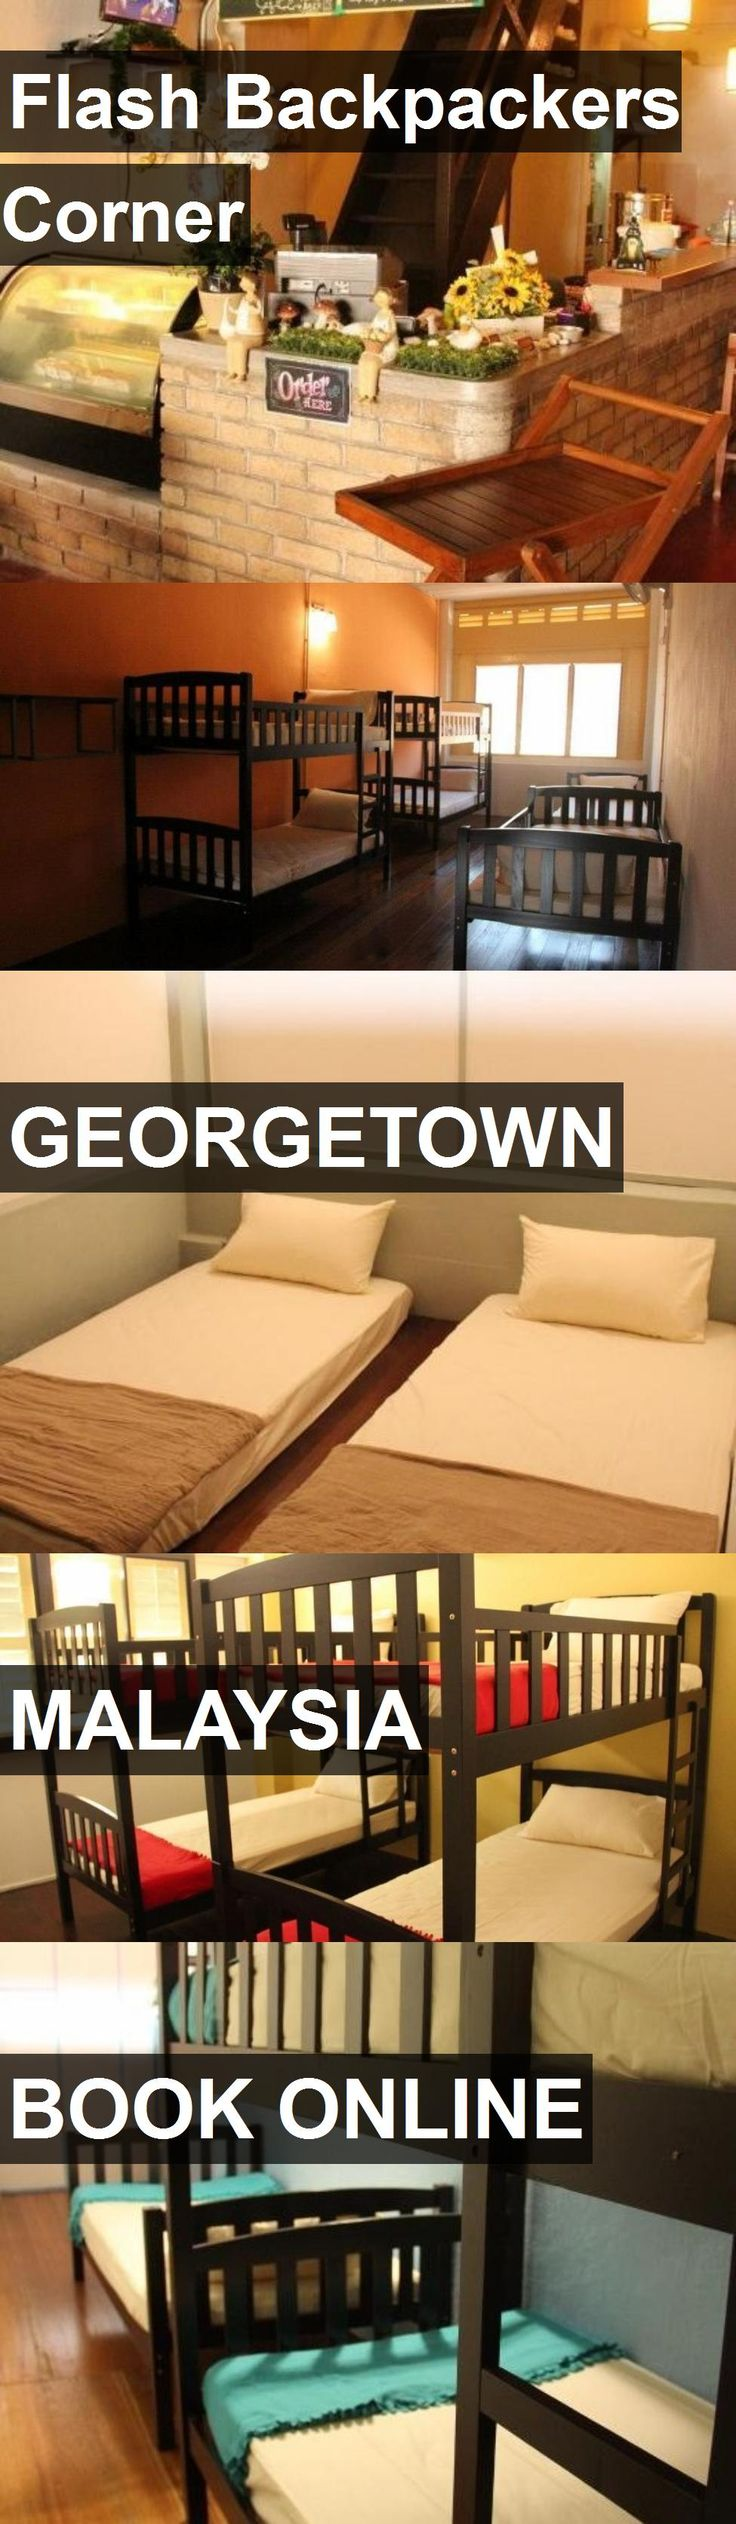 Hotel Flash Backpackers Corner in Georgetown, Malaysia. For more information, photos, reviews and best prices please follow the link. #Malaysia #Georgetown #travel #vacation #hotel